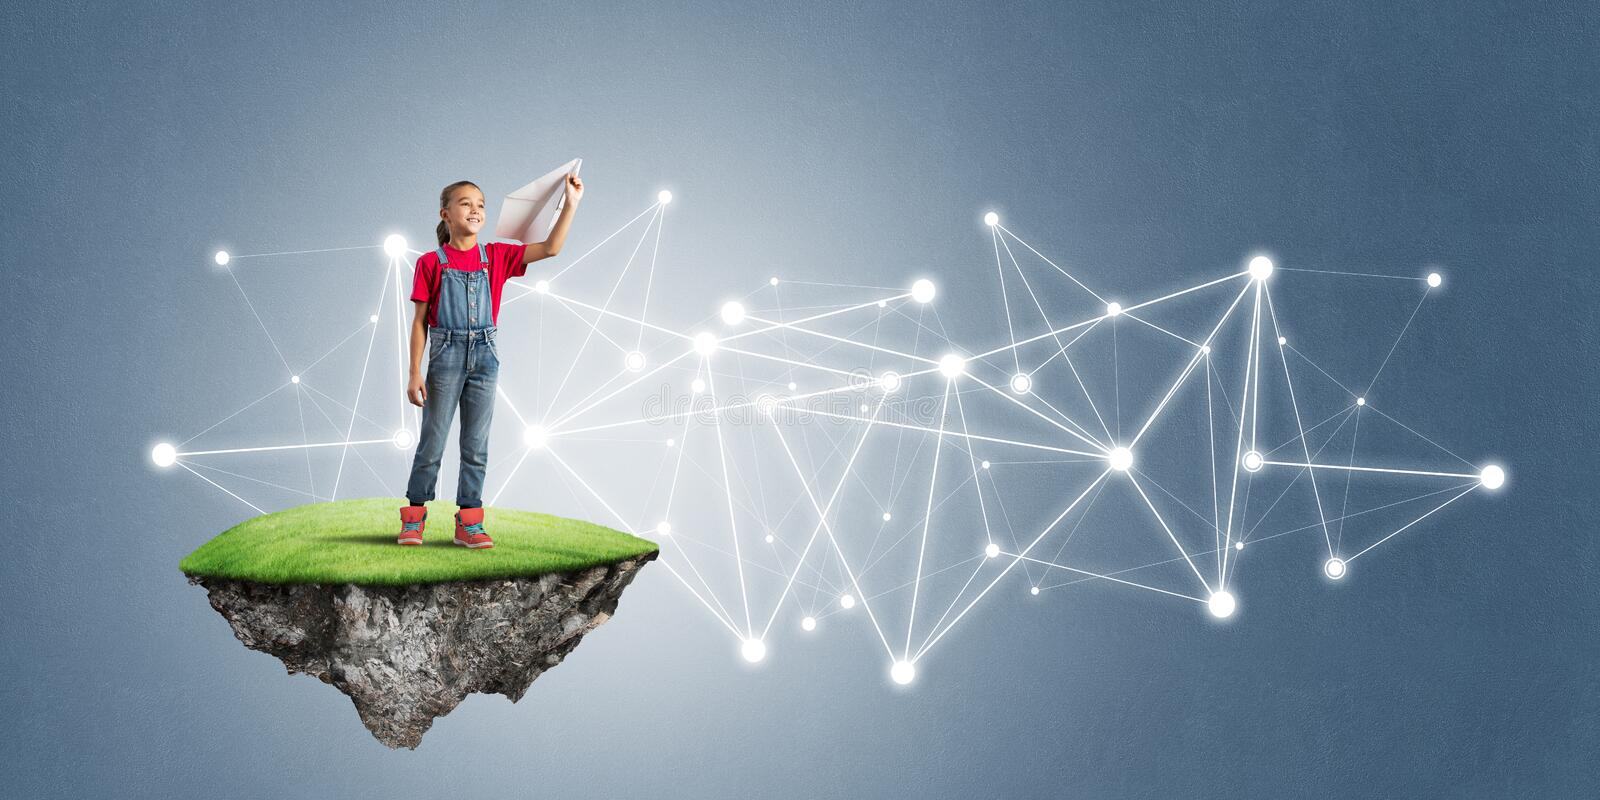 Concept of careless happy childhood with girl on flying island. Cute kid girl standing on flying island throwing paper plane royalty free stock image